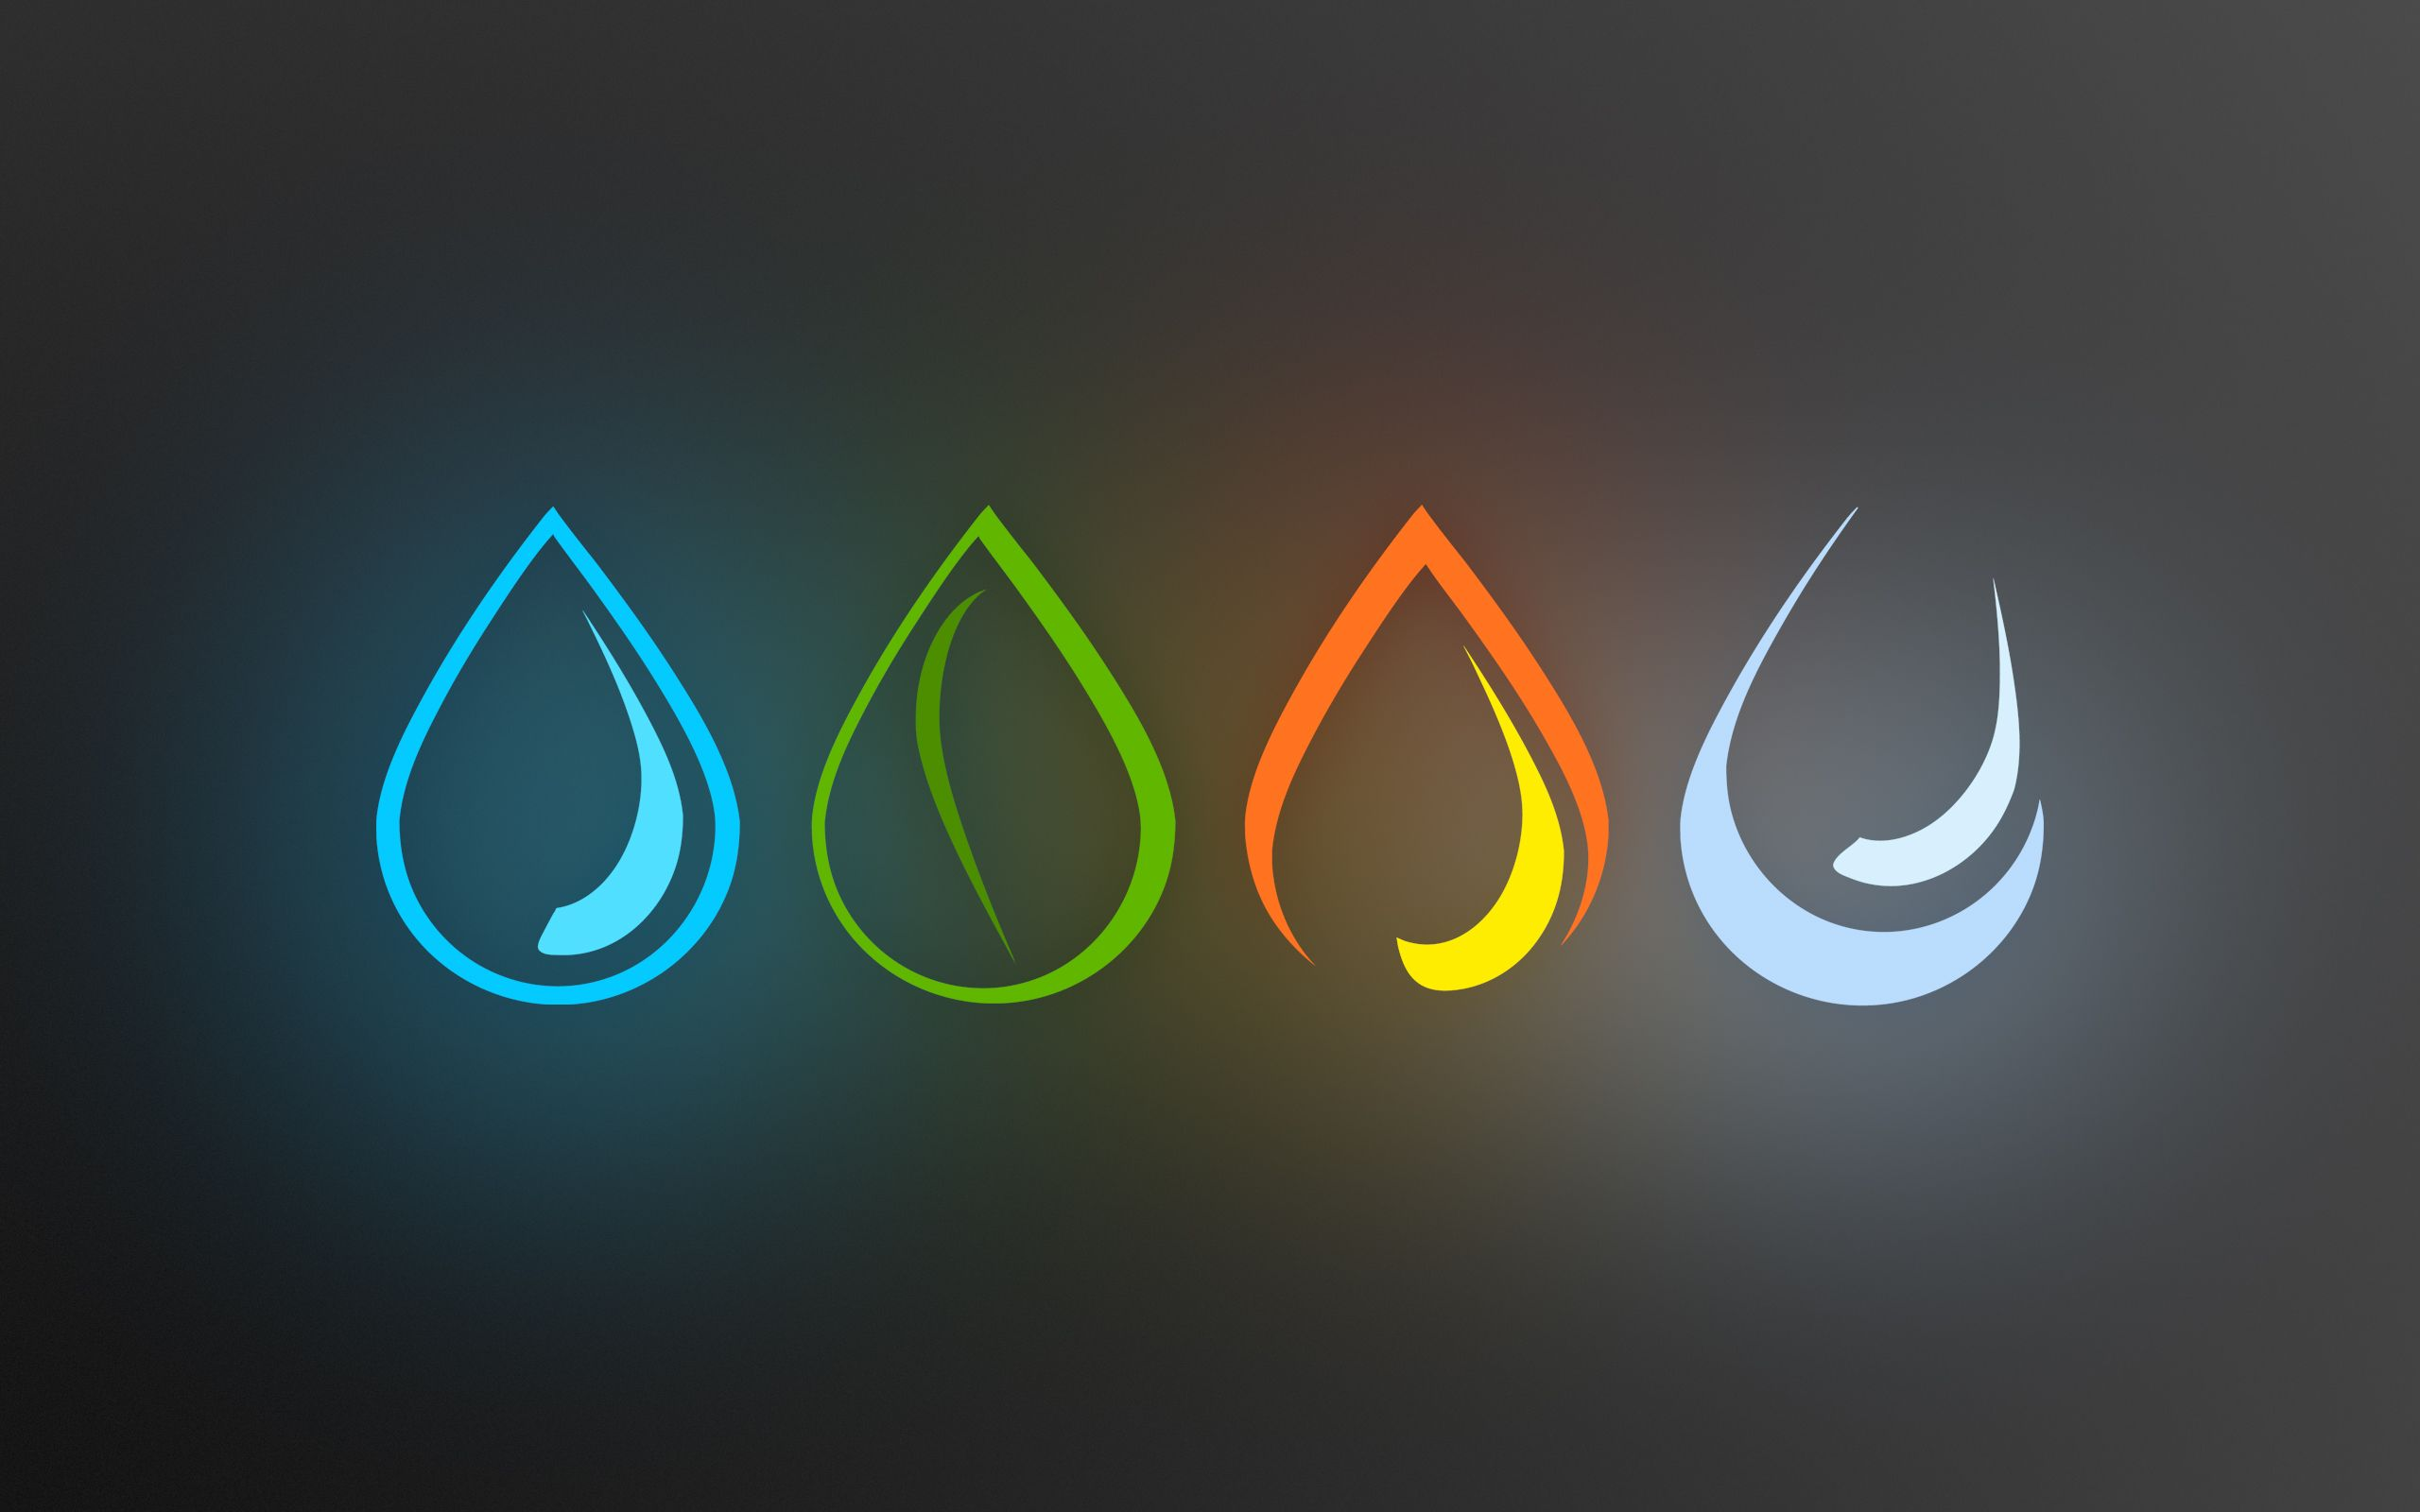 Water Minimalistic Fire Earth Elements Air Four Elements Symbols